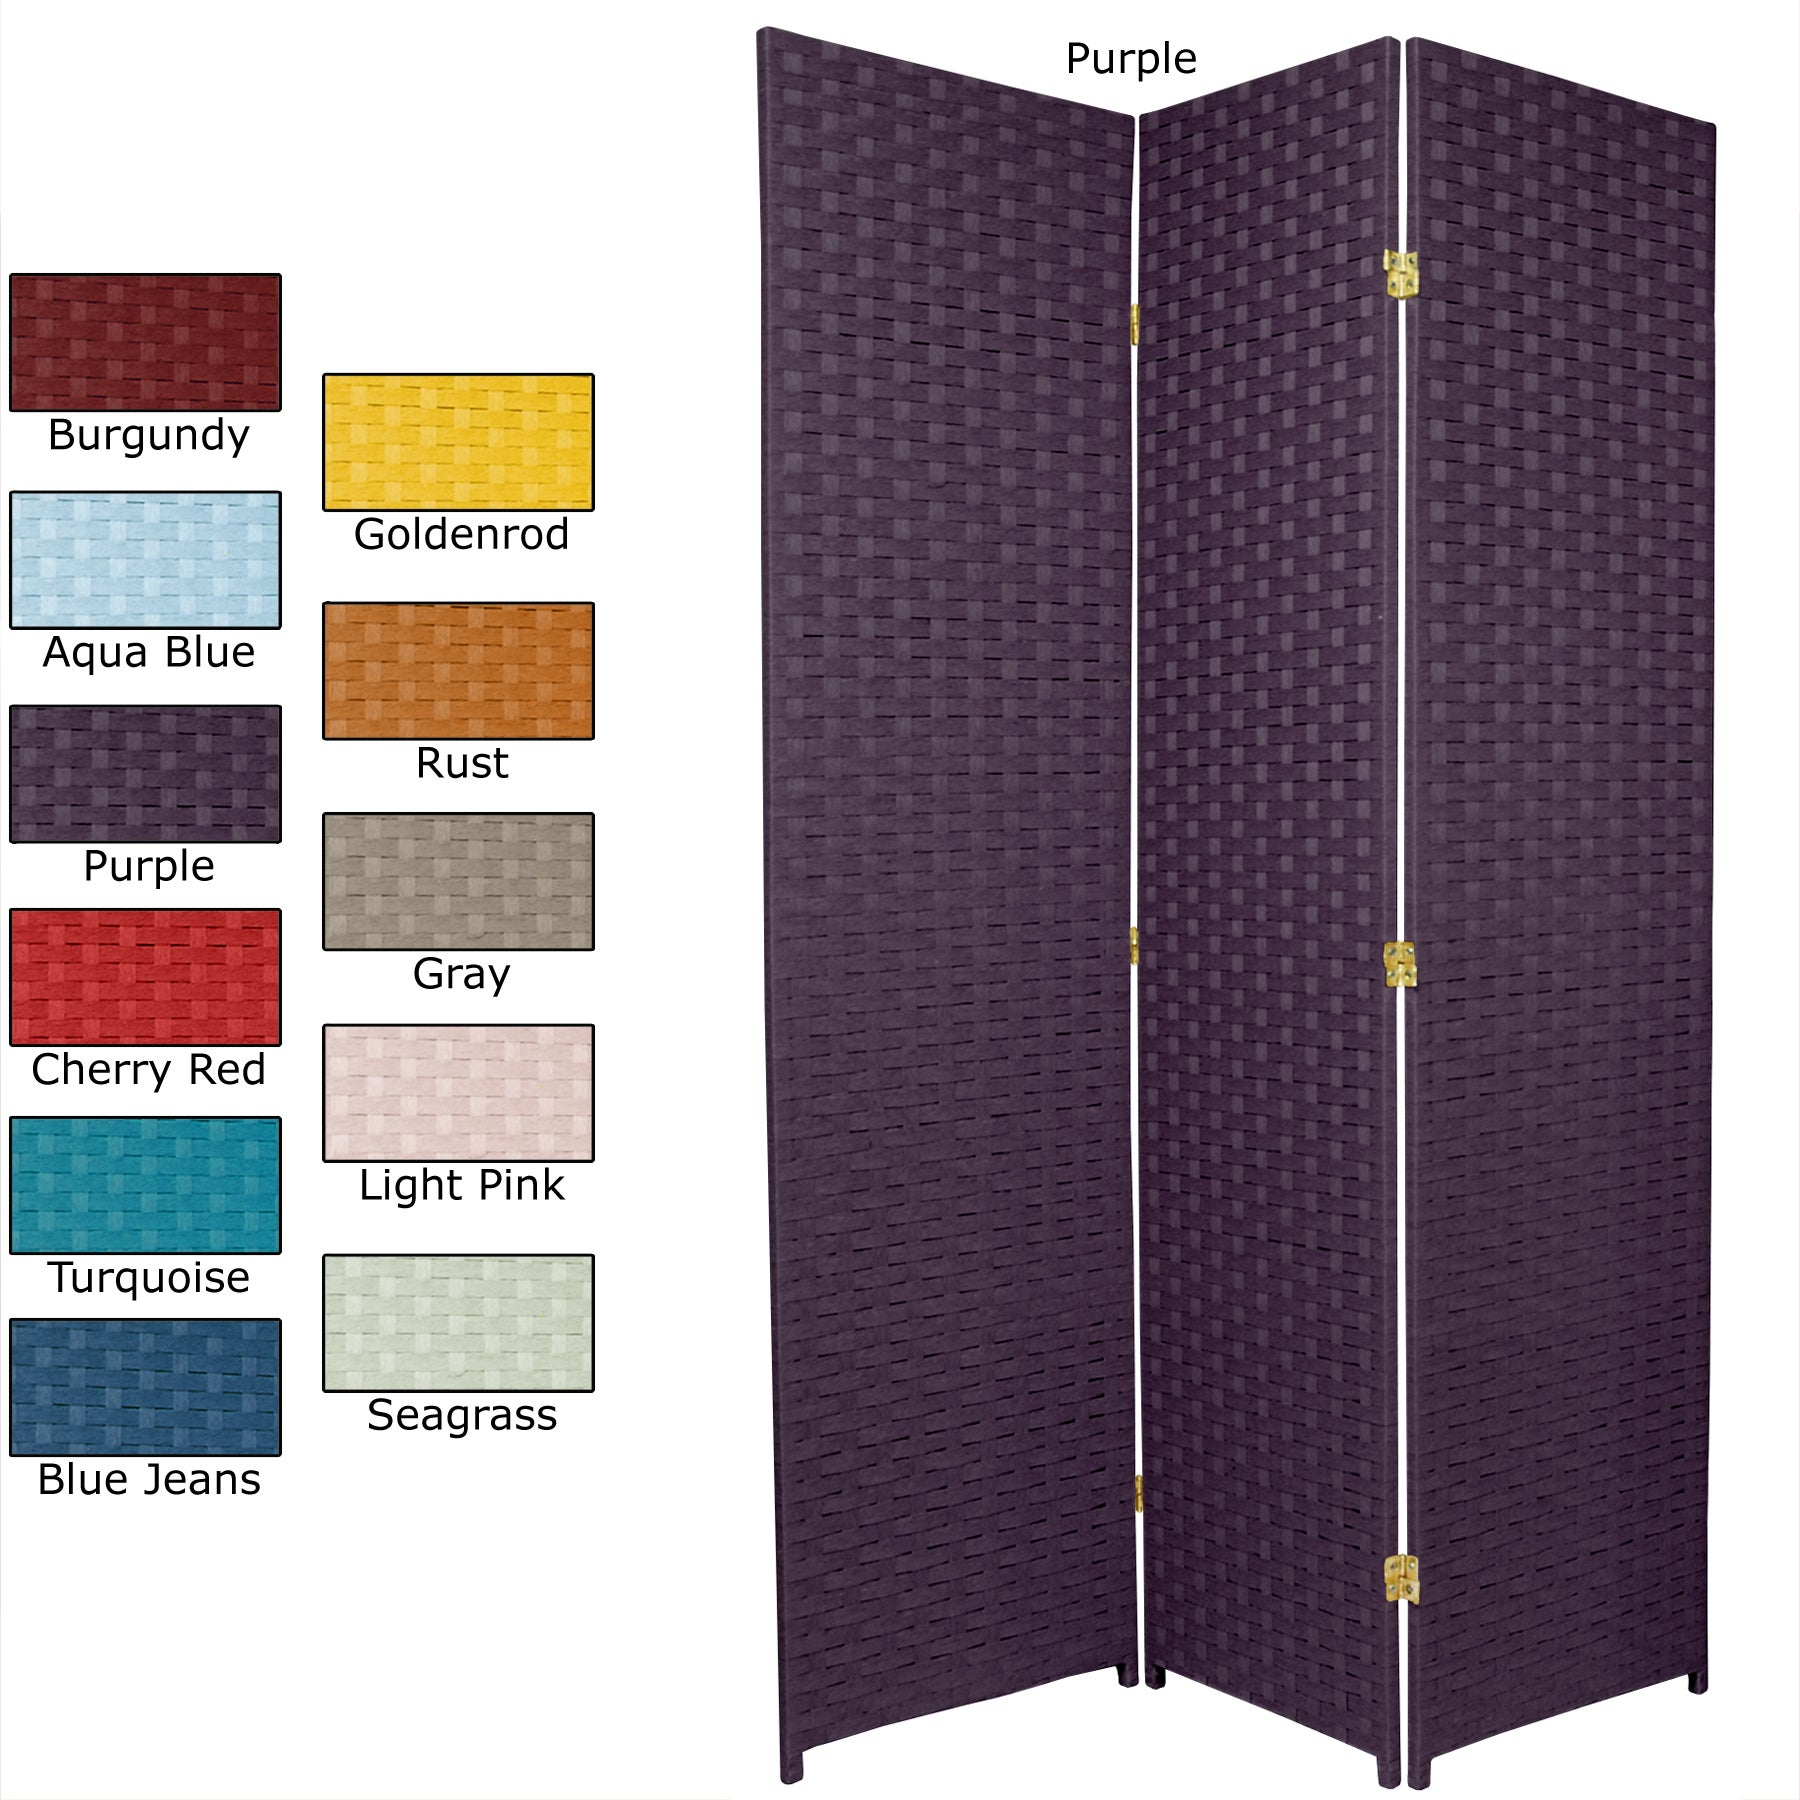 6 ft. Tall Woven Fiber Room Divider - Special Edition (China)